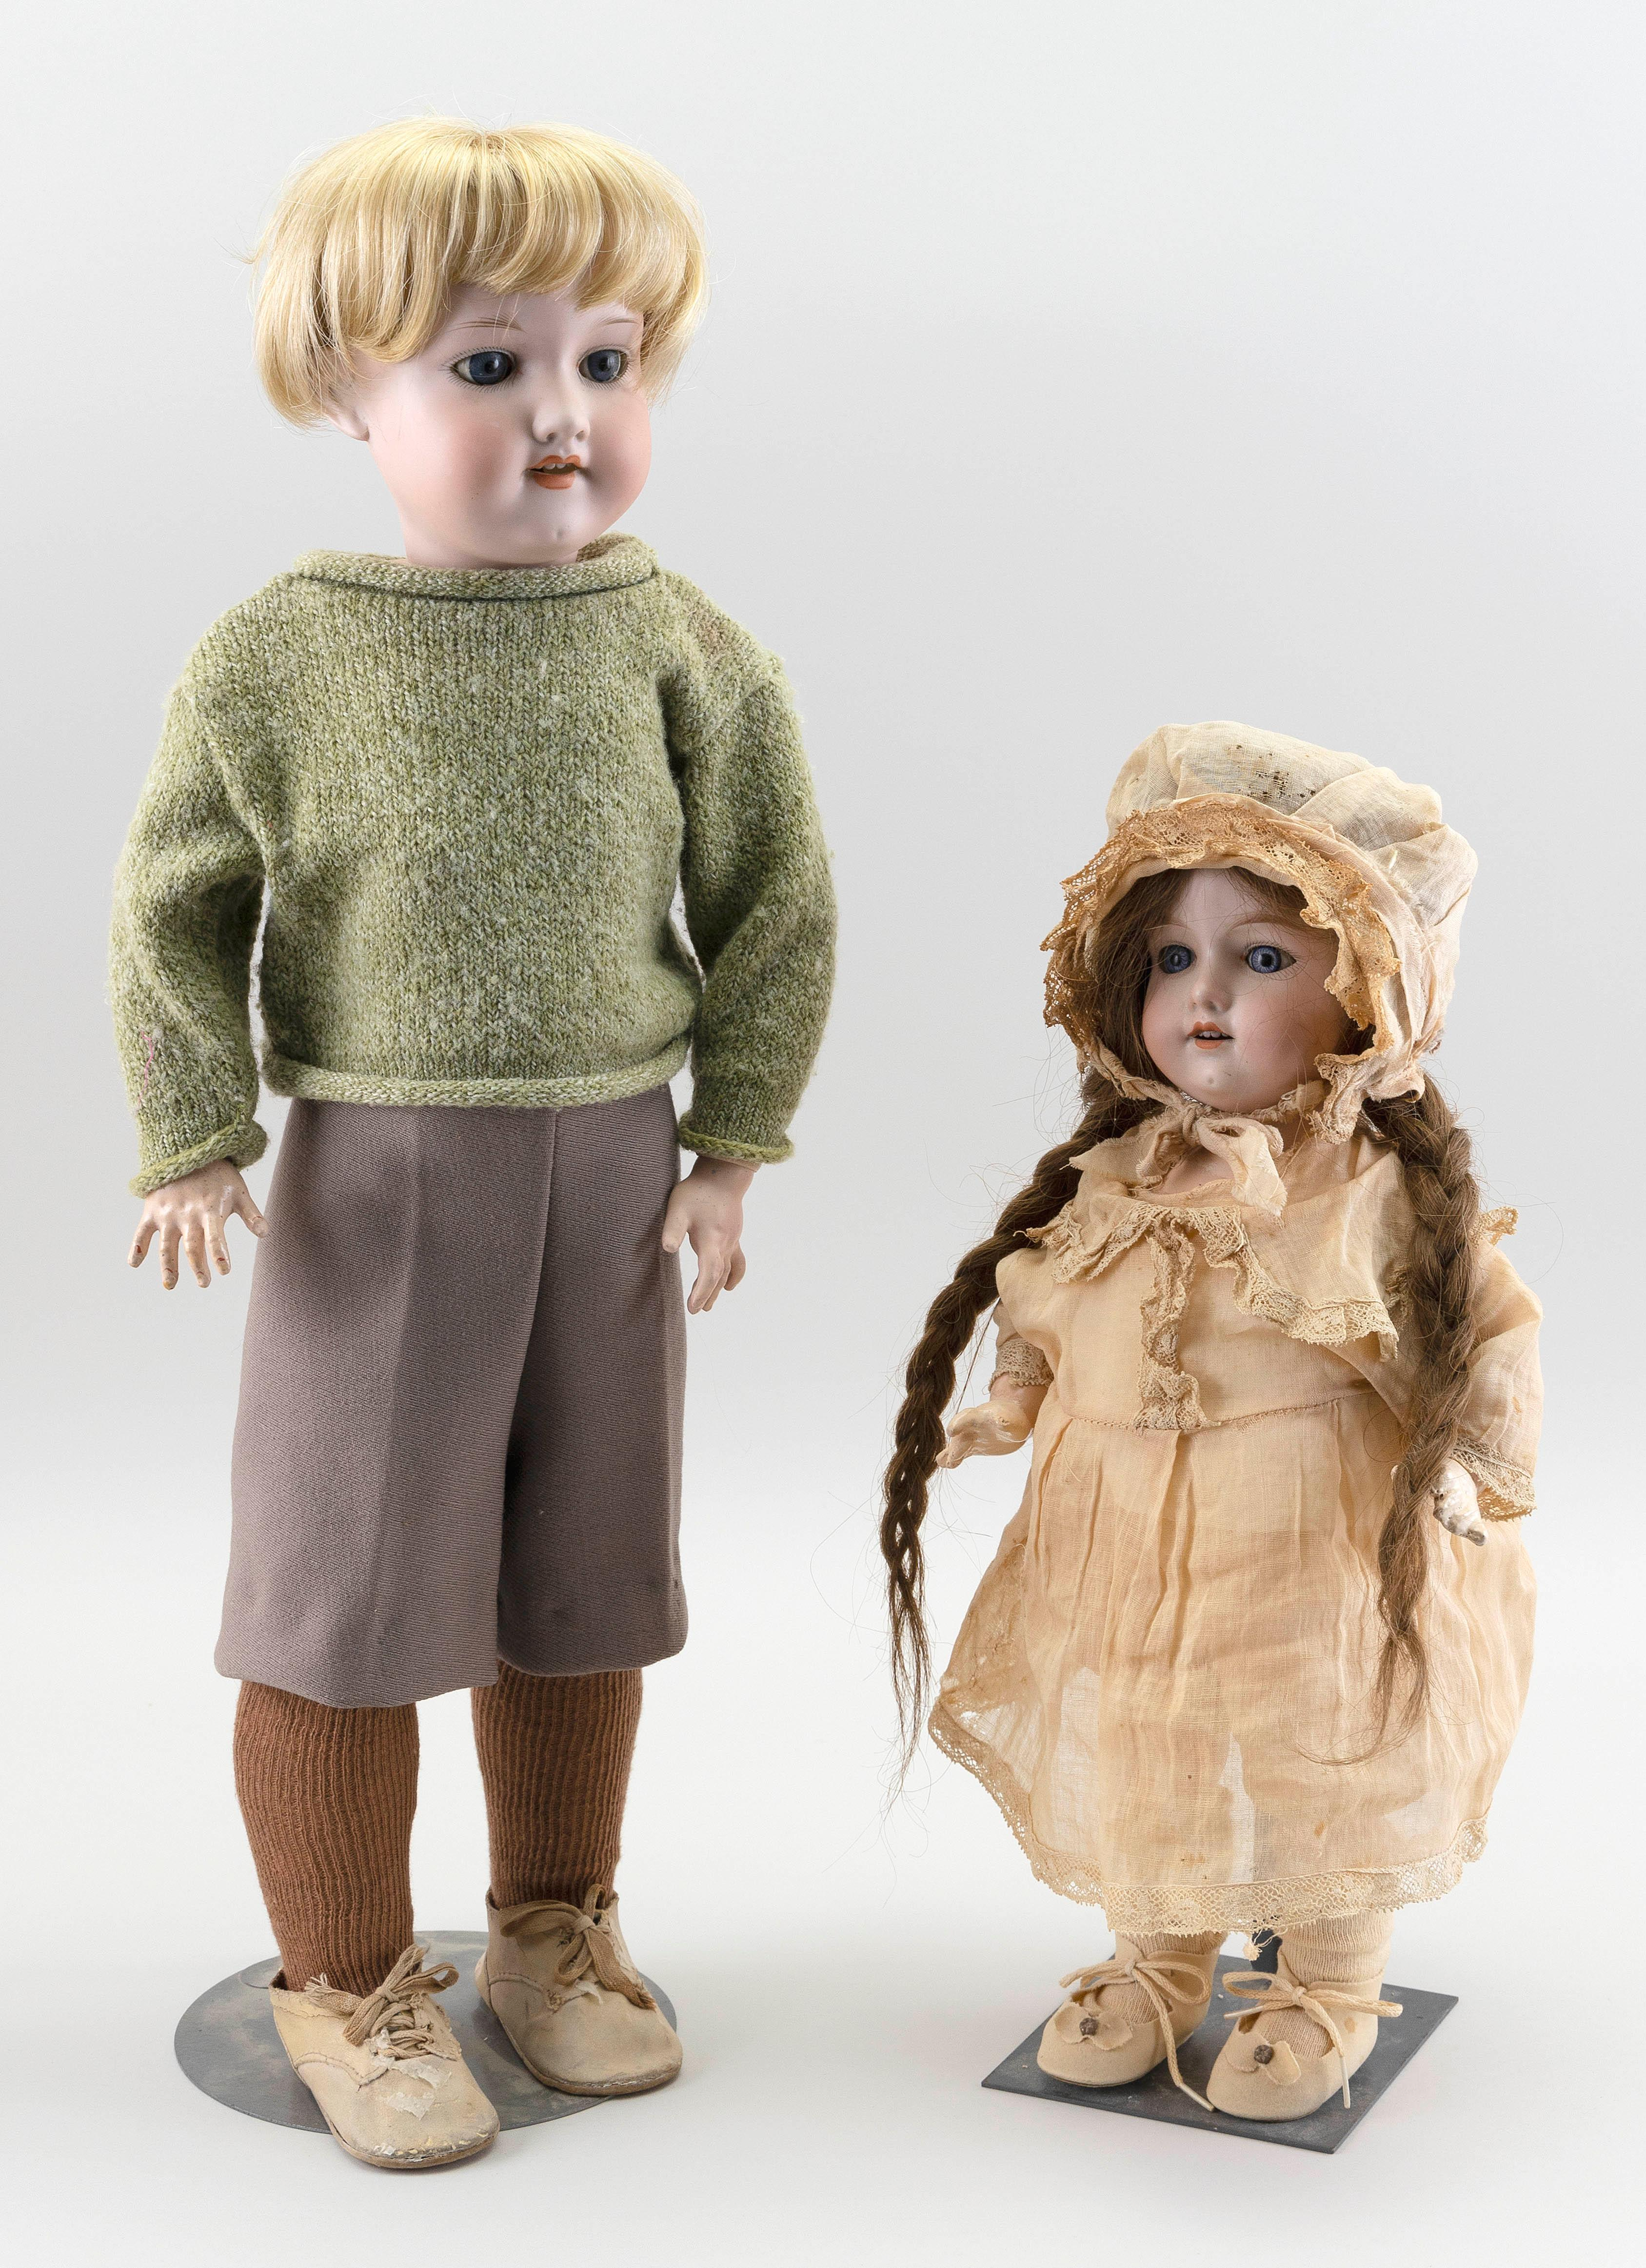 "TWO AM 390 BISQUE-HEAD DOLLS 1910 Heights 16"" and 22""."